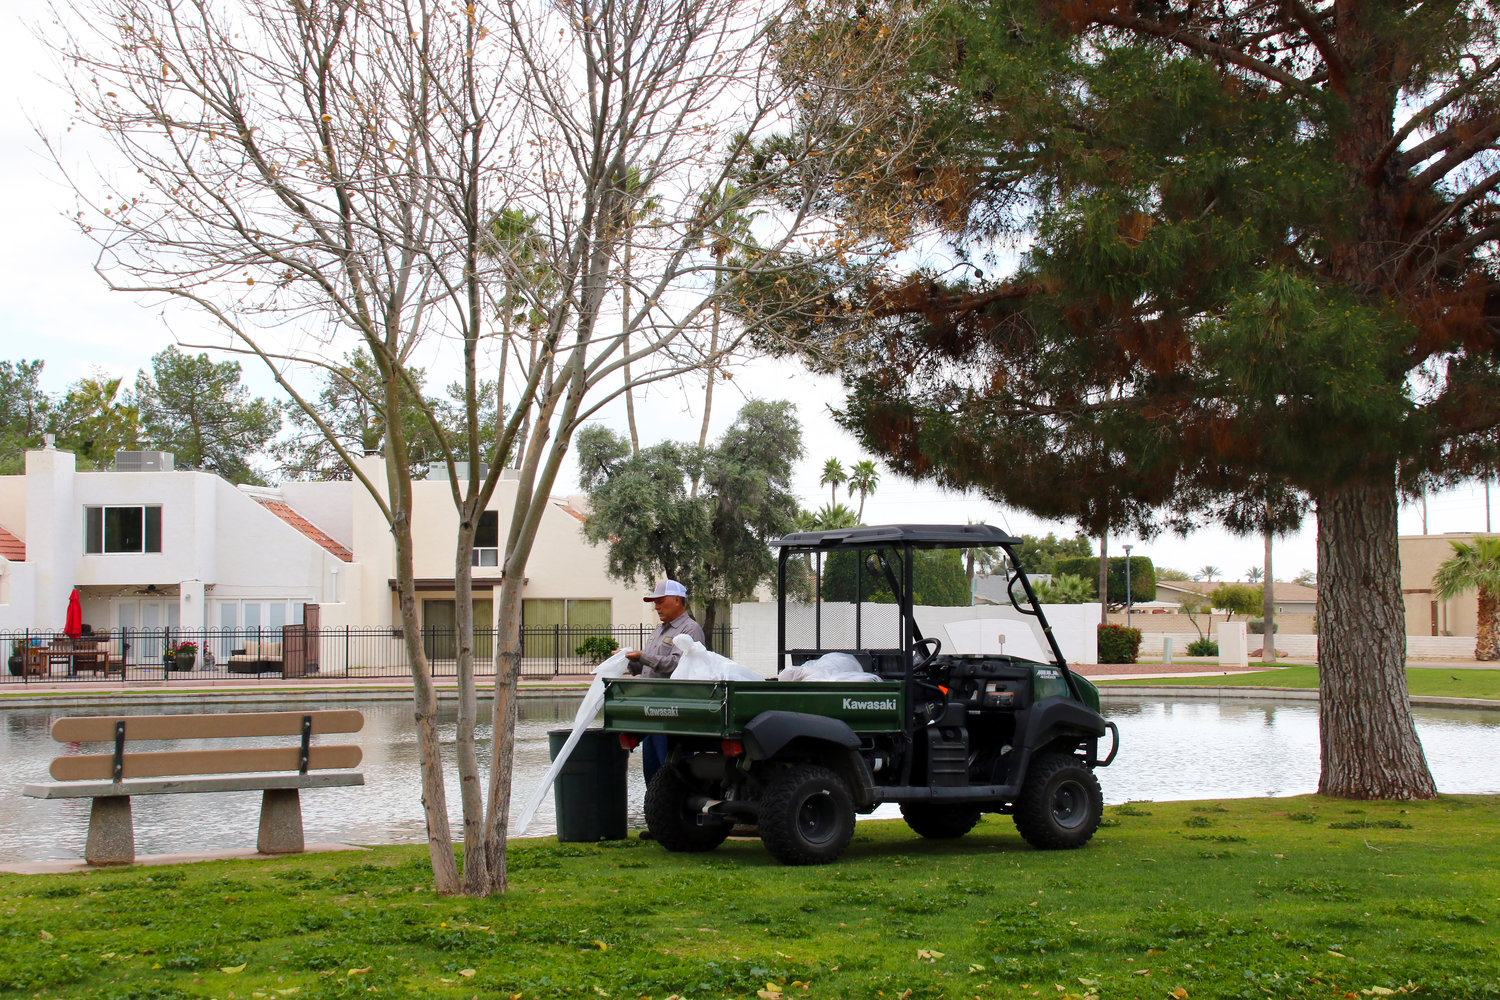 Maintenance of city parks, like Tierra Verde Lake Park on Old Litchfield Road, is included in the city's general fund budget, which relies heavily on population-based revenue allocations from the state.